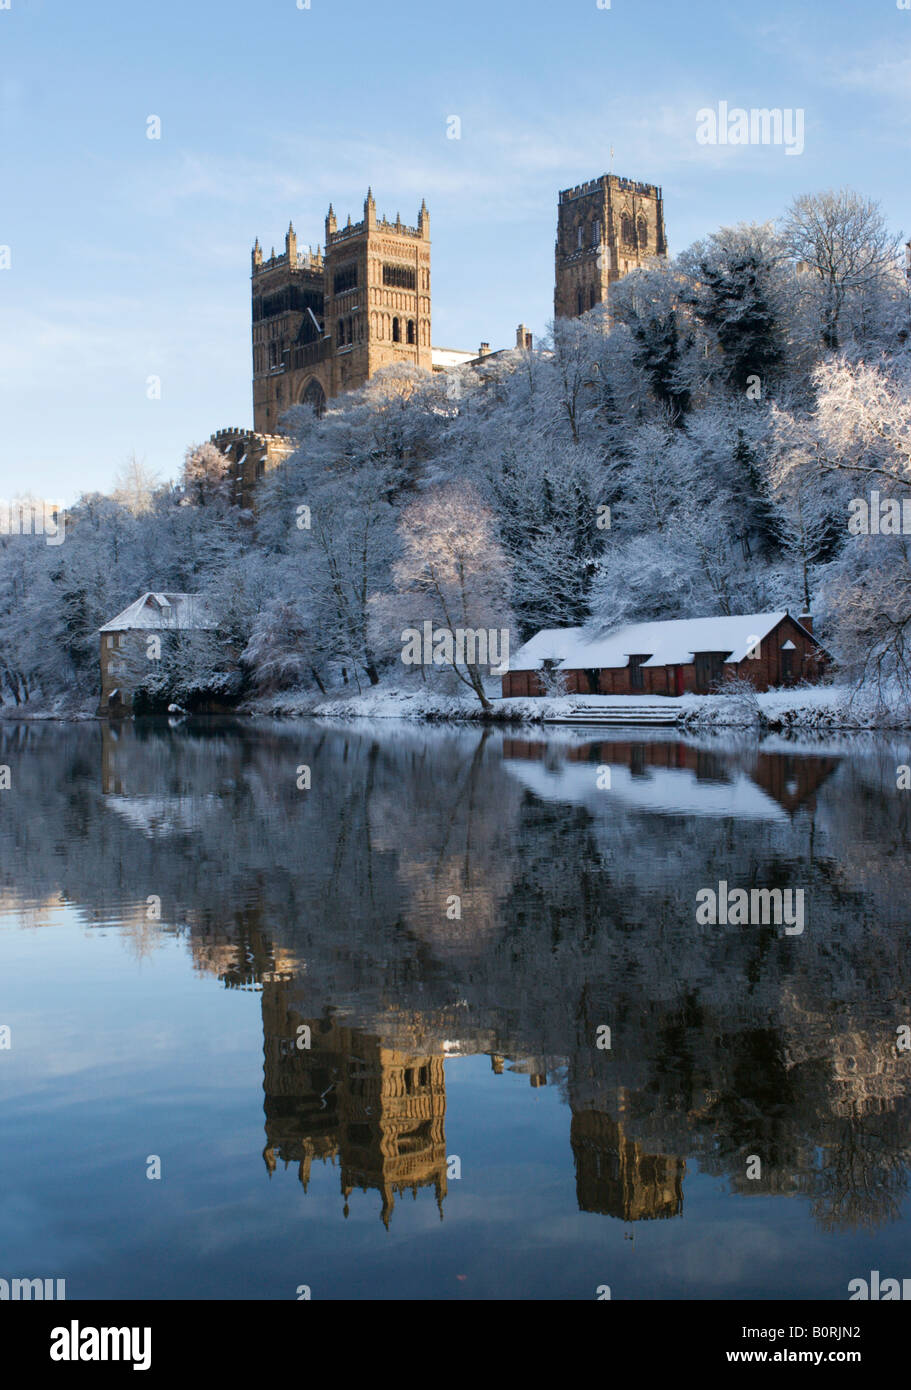 winter-view-of-durham-cathedral-with-ref